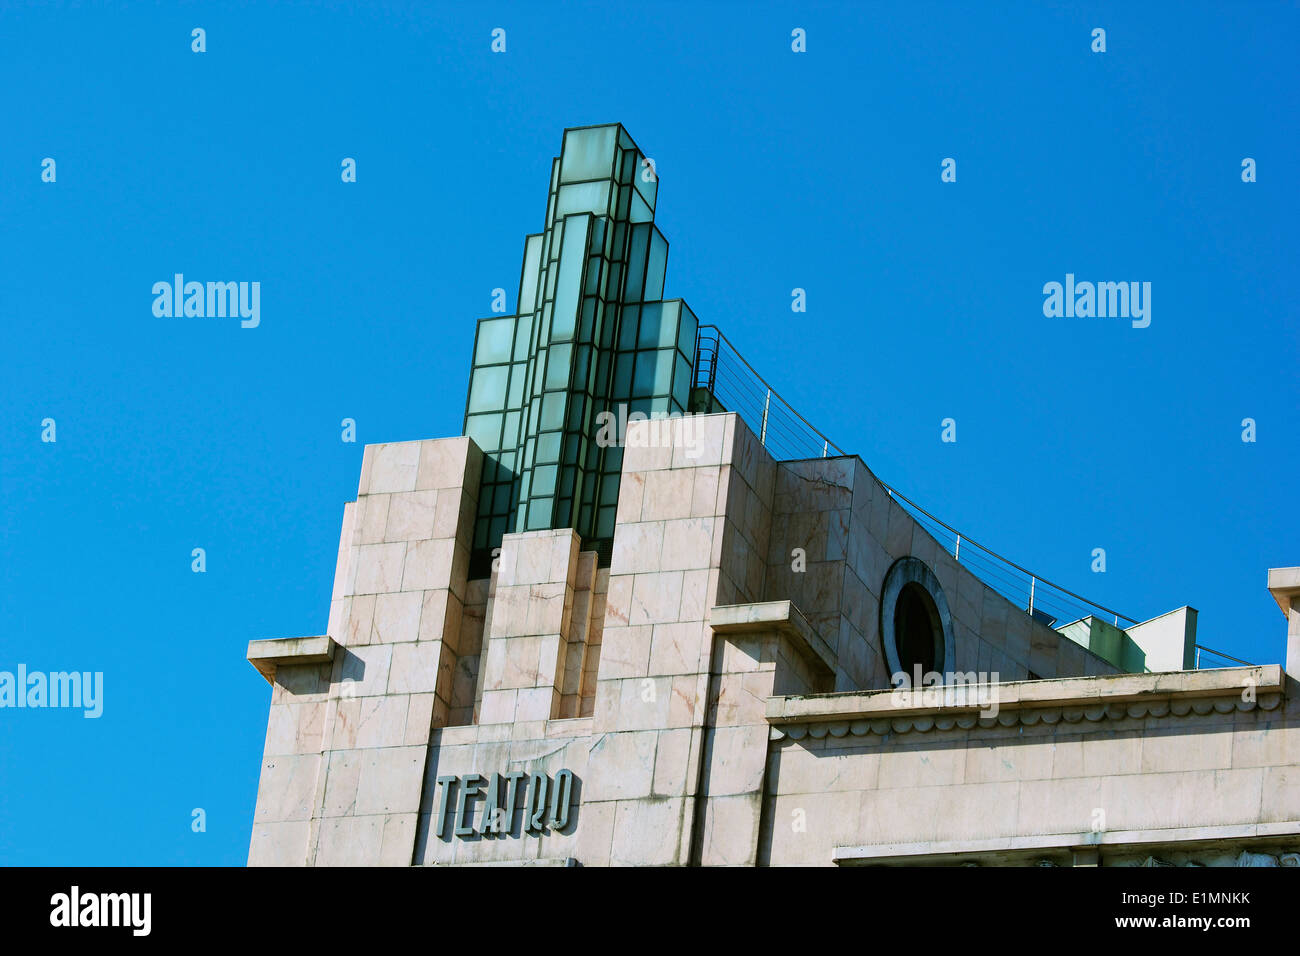 Rooftop of Art deco 1930's Eden building a former theatre and cinema now a hotel Lisbon Portugal western Europe - Stock Image